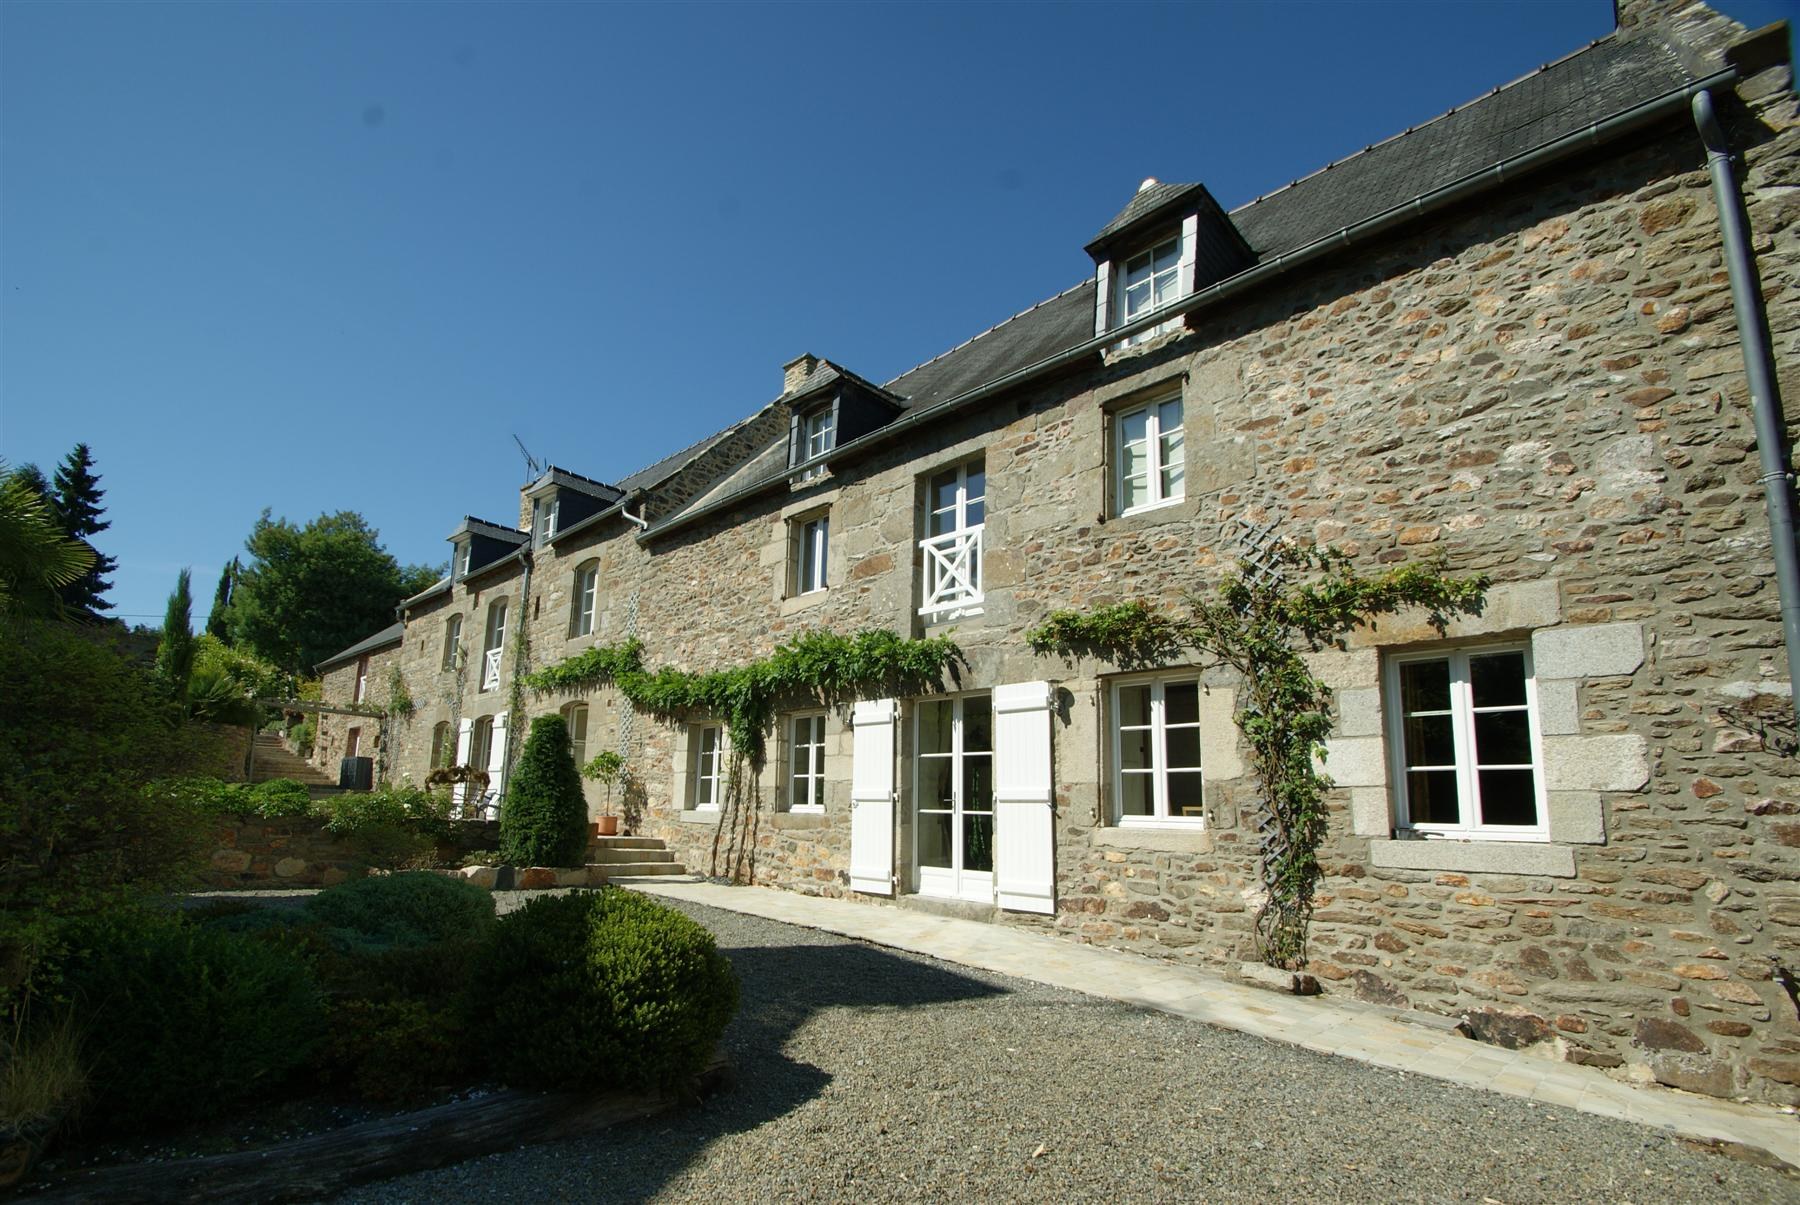 Single Family Home for Sale at propriete de caractère Other Brittany, Brittany France